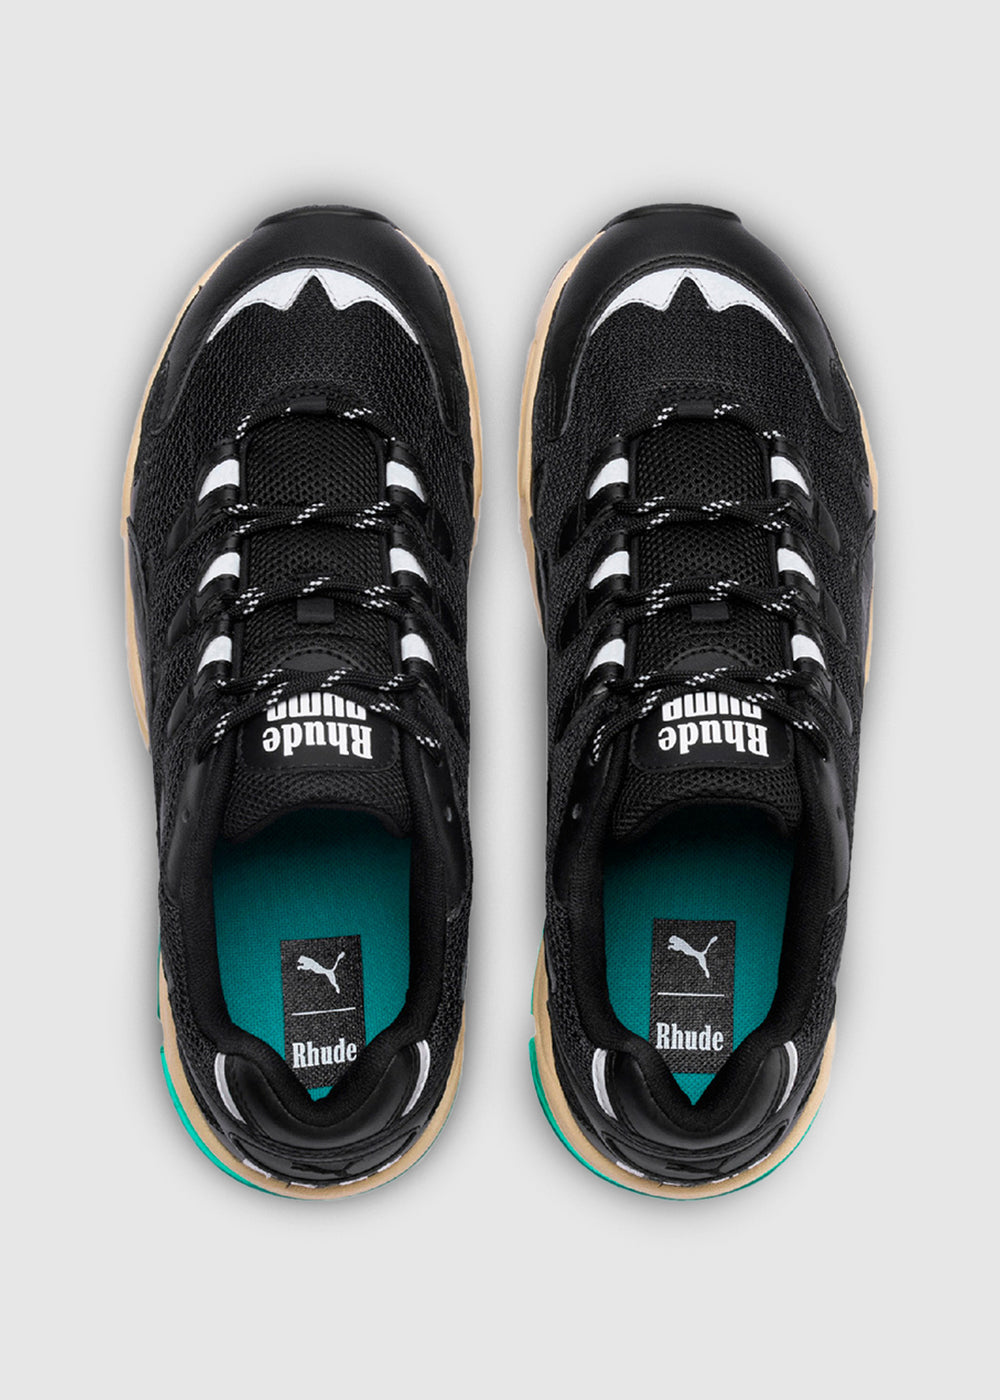 puma-x-rhude-cell-alien-black-3